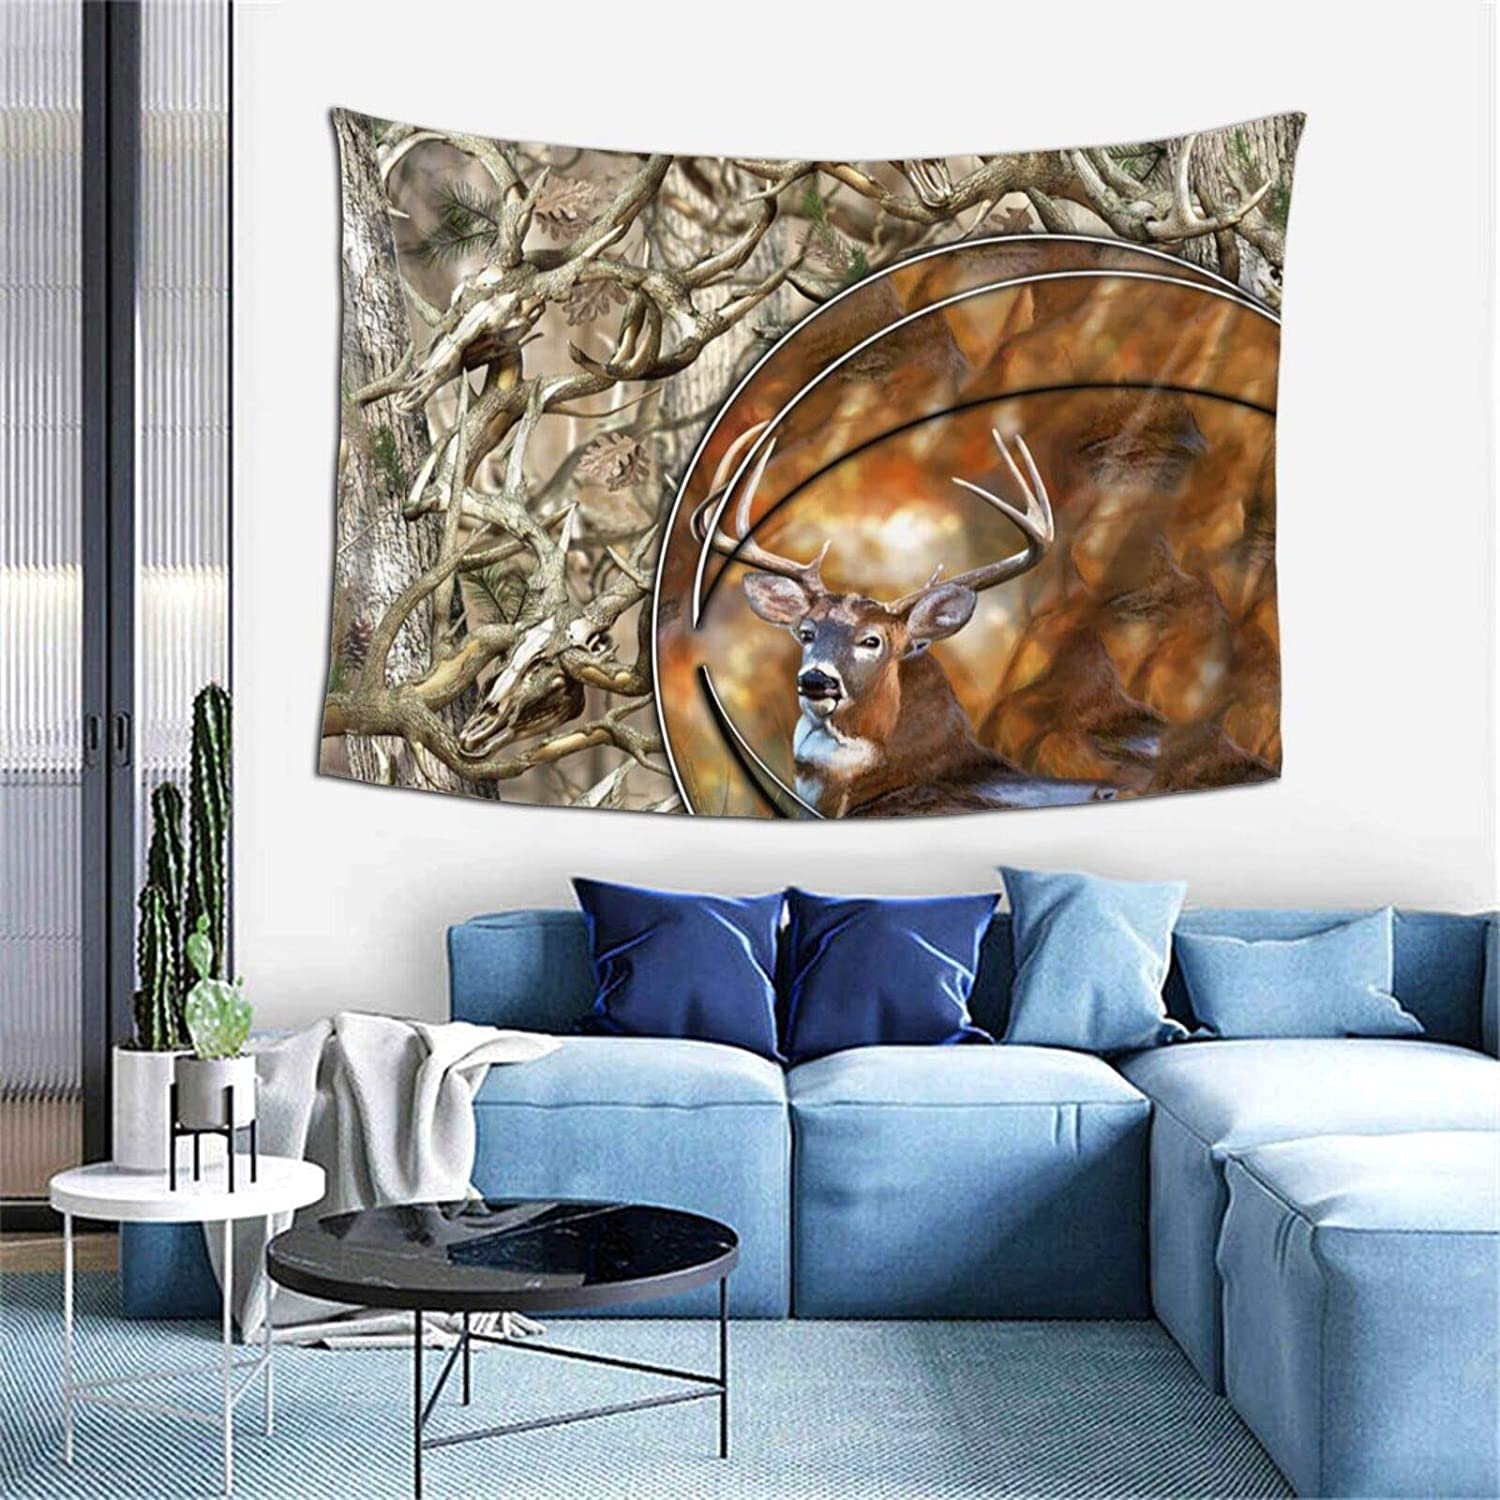 Hunting Camo Decor Tapestry - Realistic Deer Skull Camouflage Hippie Art Tapestry Wall Hanging for Bedroom Living Room College Dorm - TV Backdrop Ethnic Wall Blankets Tapestry 60X40 Inches